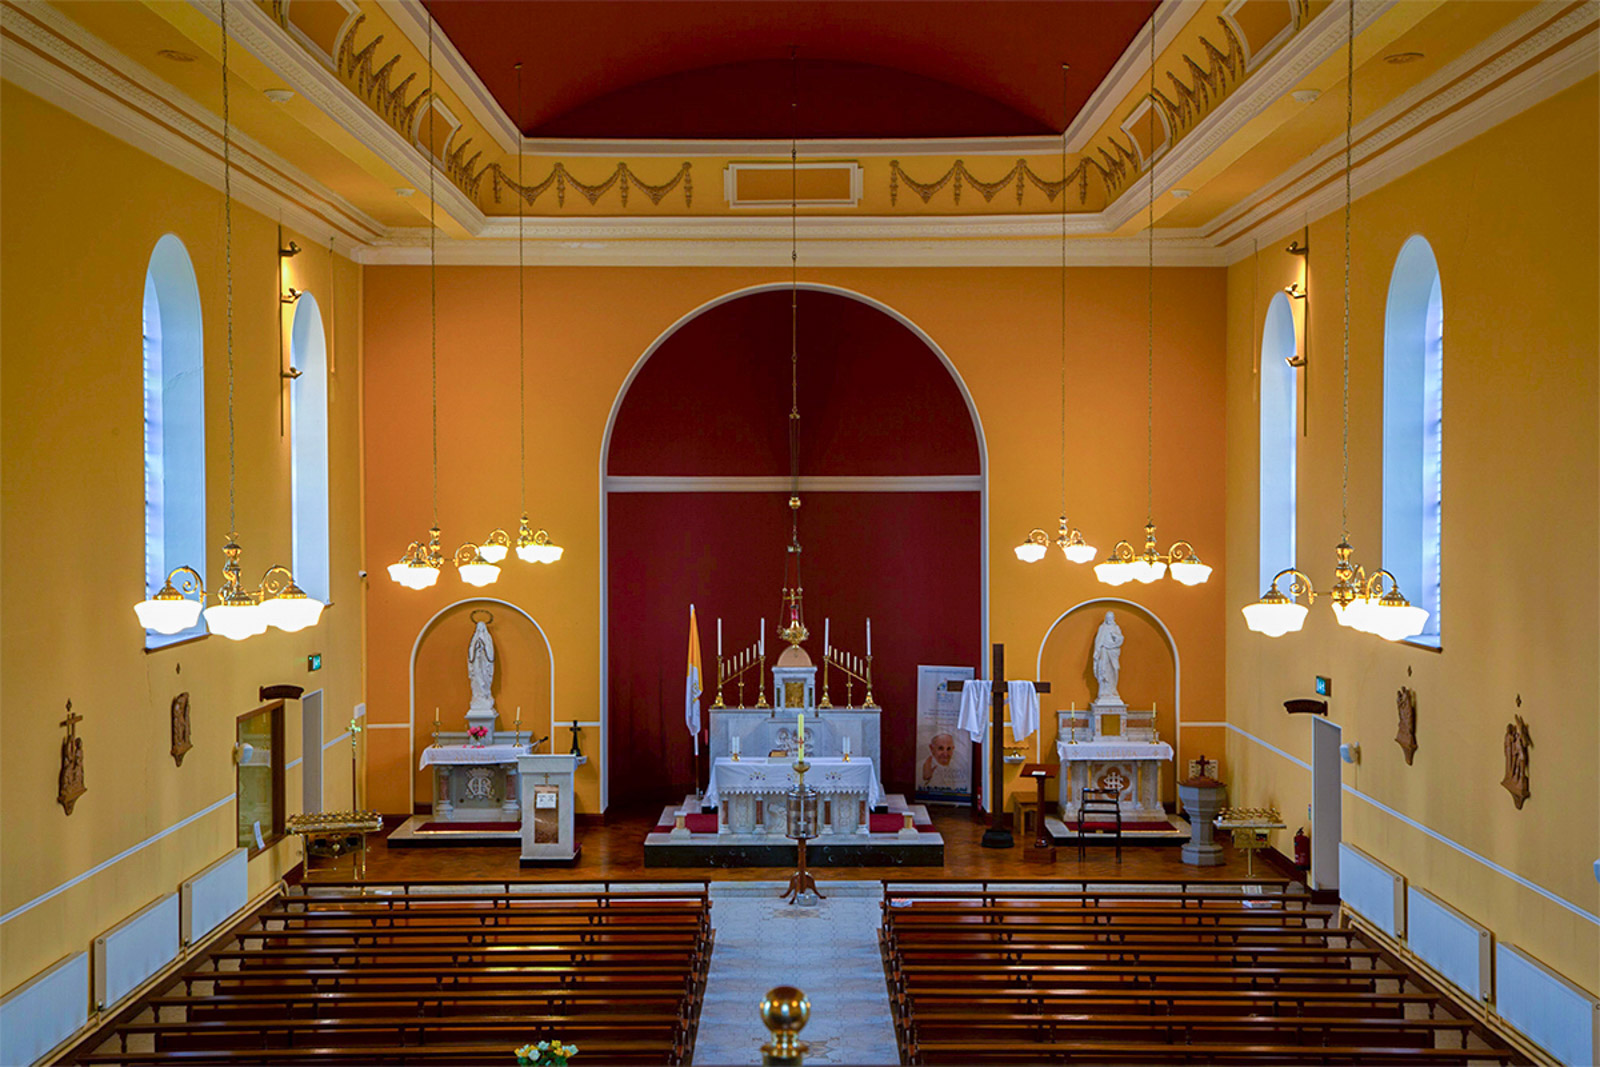 Church of the Immaculate Conception, Drung, Co. Cavan, Ireland